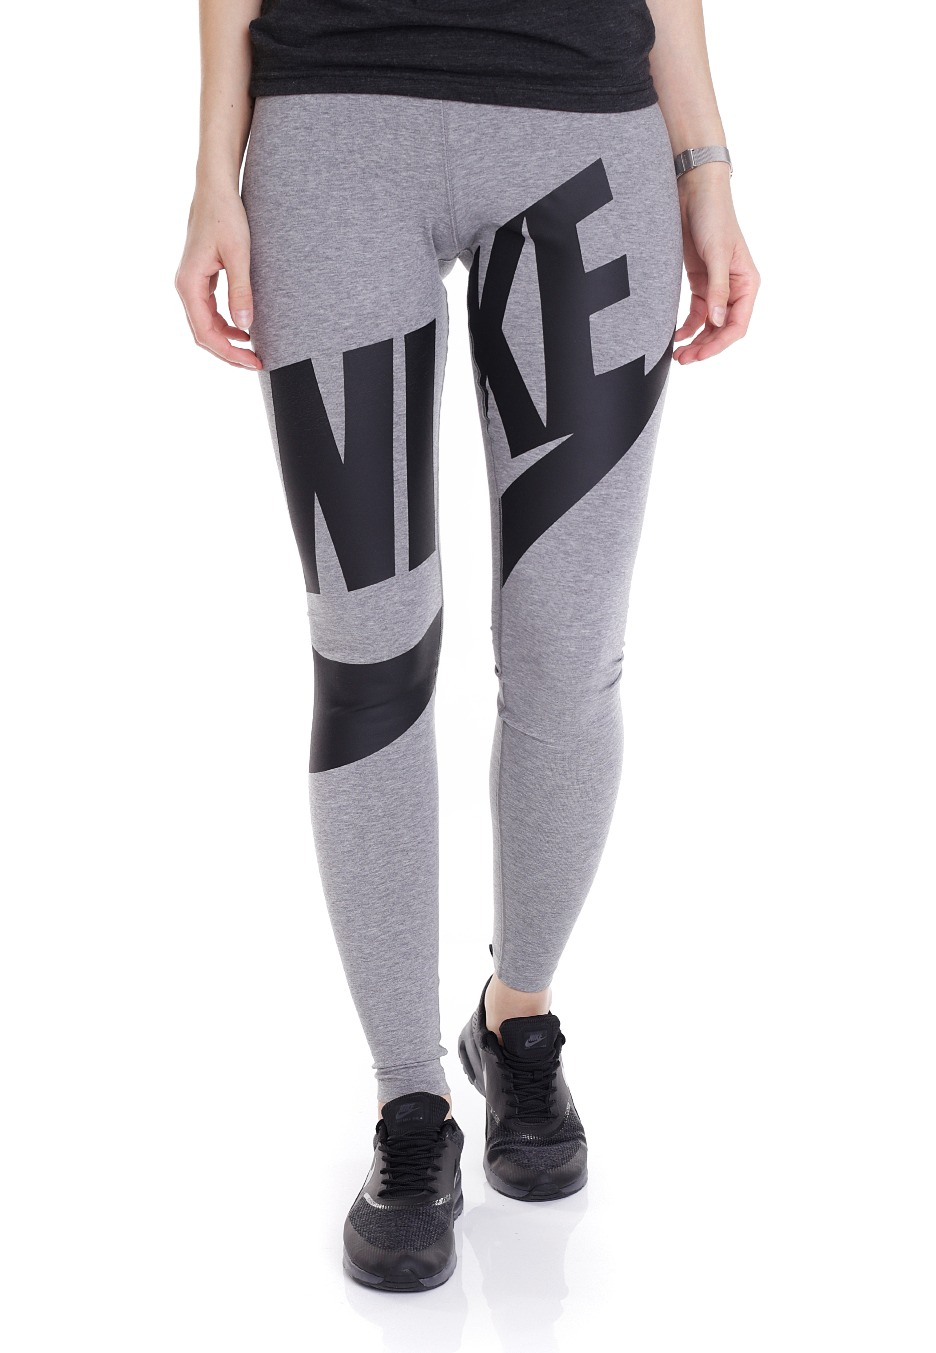 954a188cf21bb Nike - Leg-A-See Exploded Carbon Heather/Black - Leggings - Streetwear Shop  - Impericon.com US